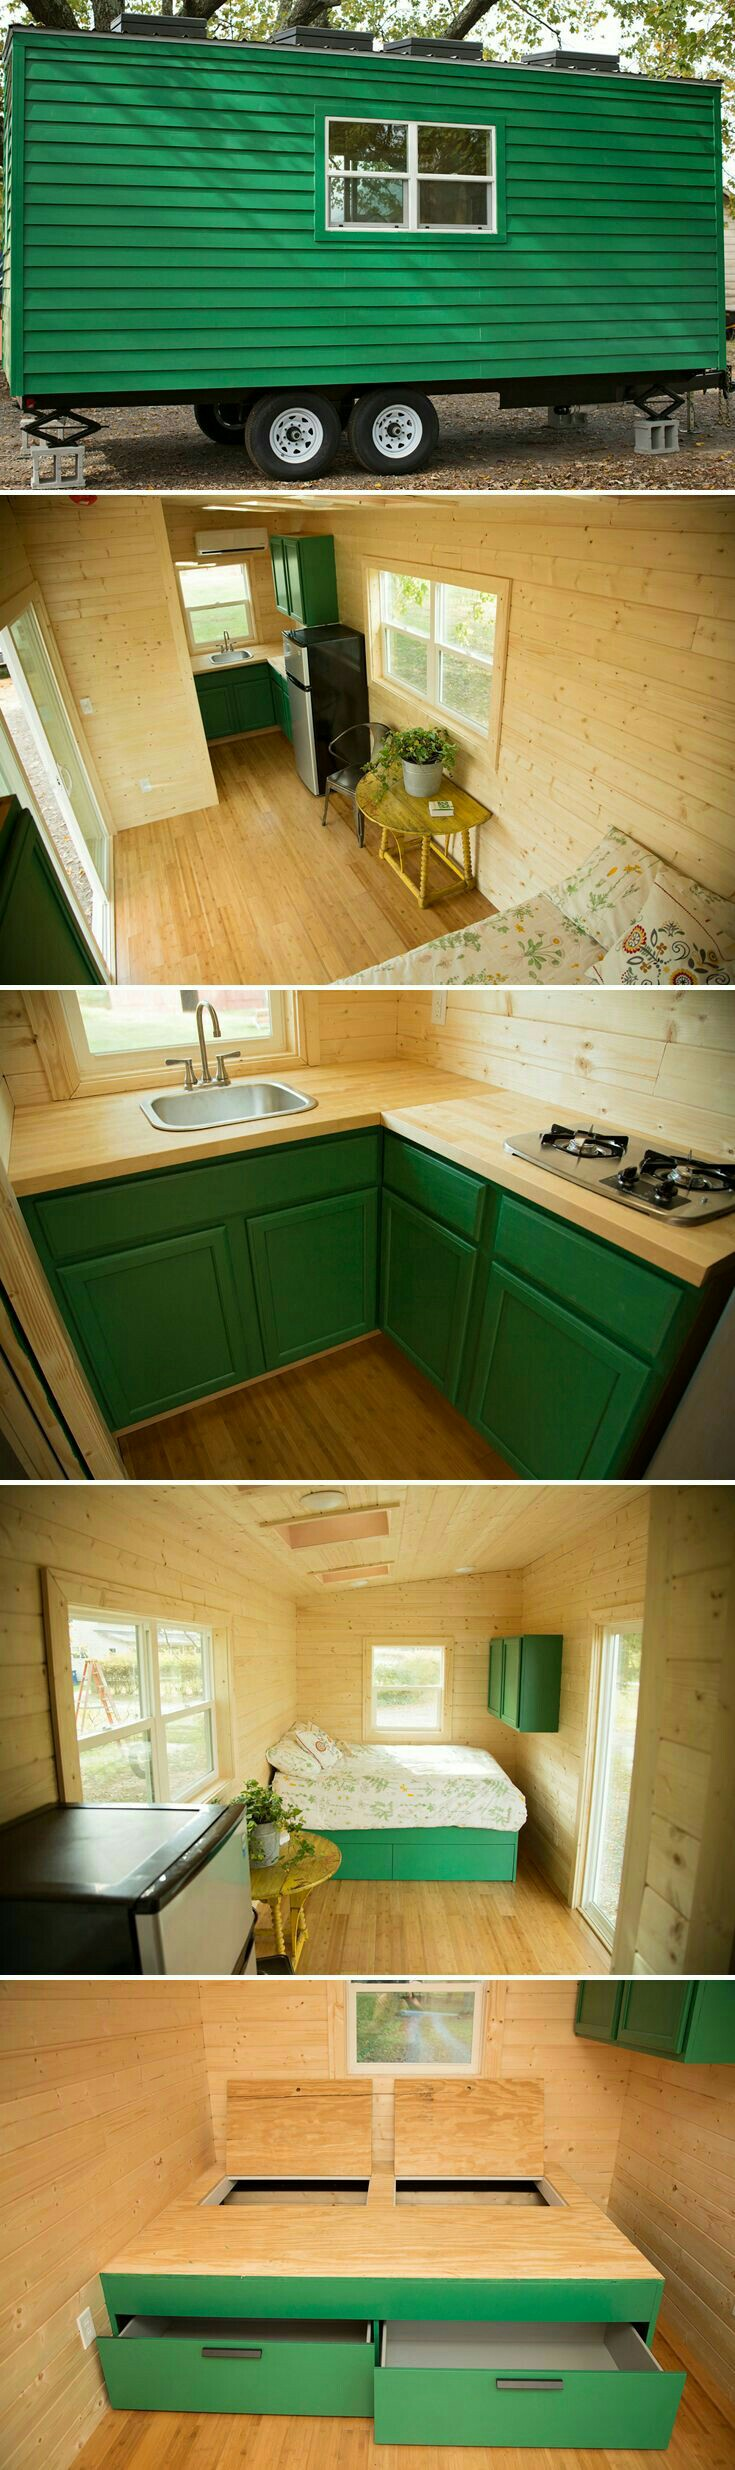 Pin By Hailey Mease On Tiny House Best Tiny House Tiny